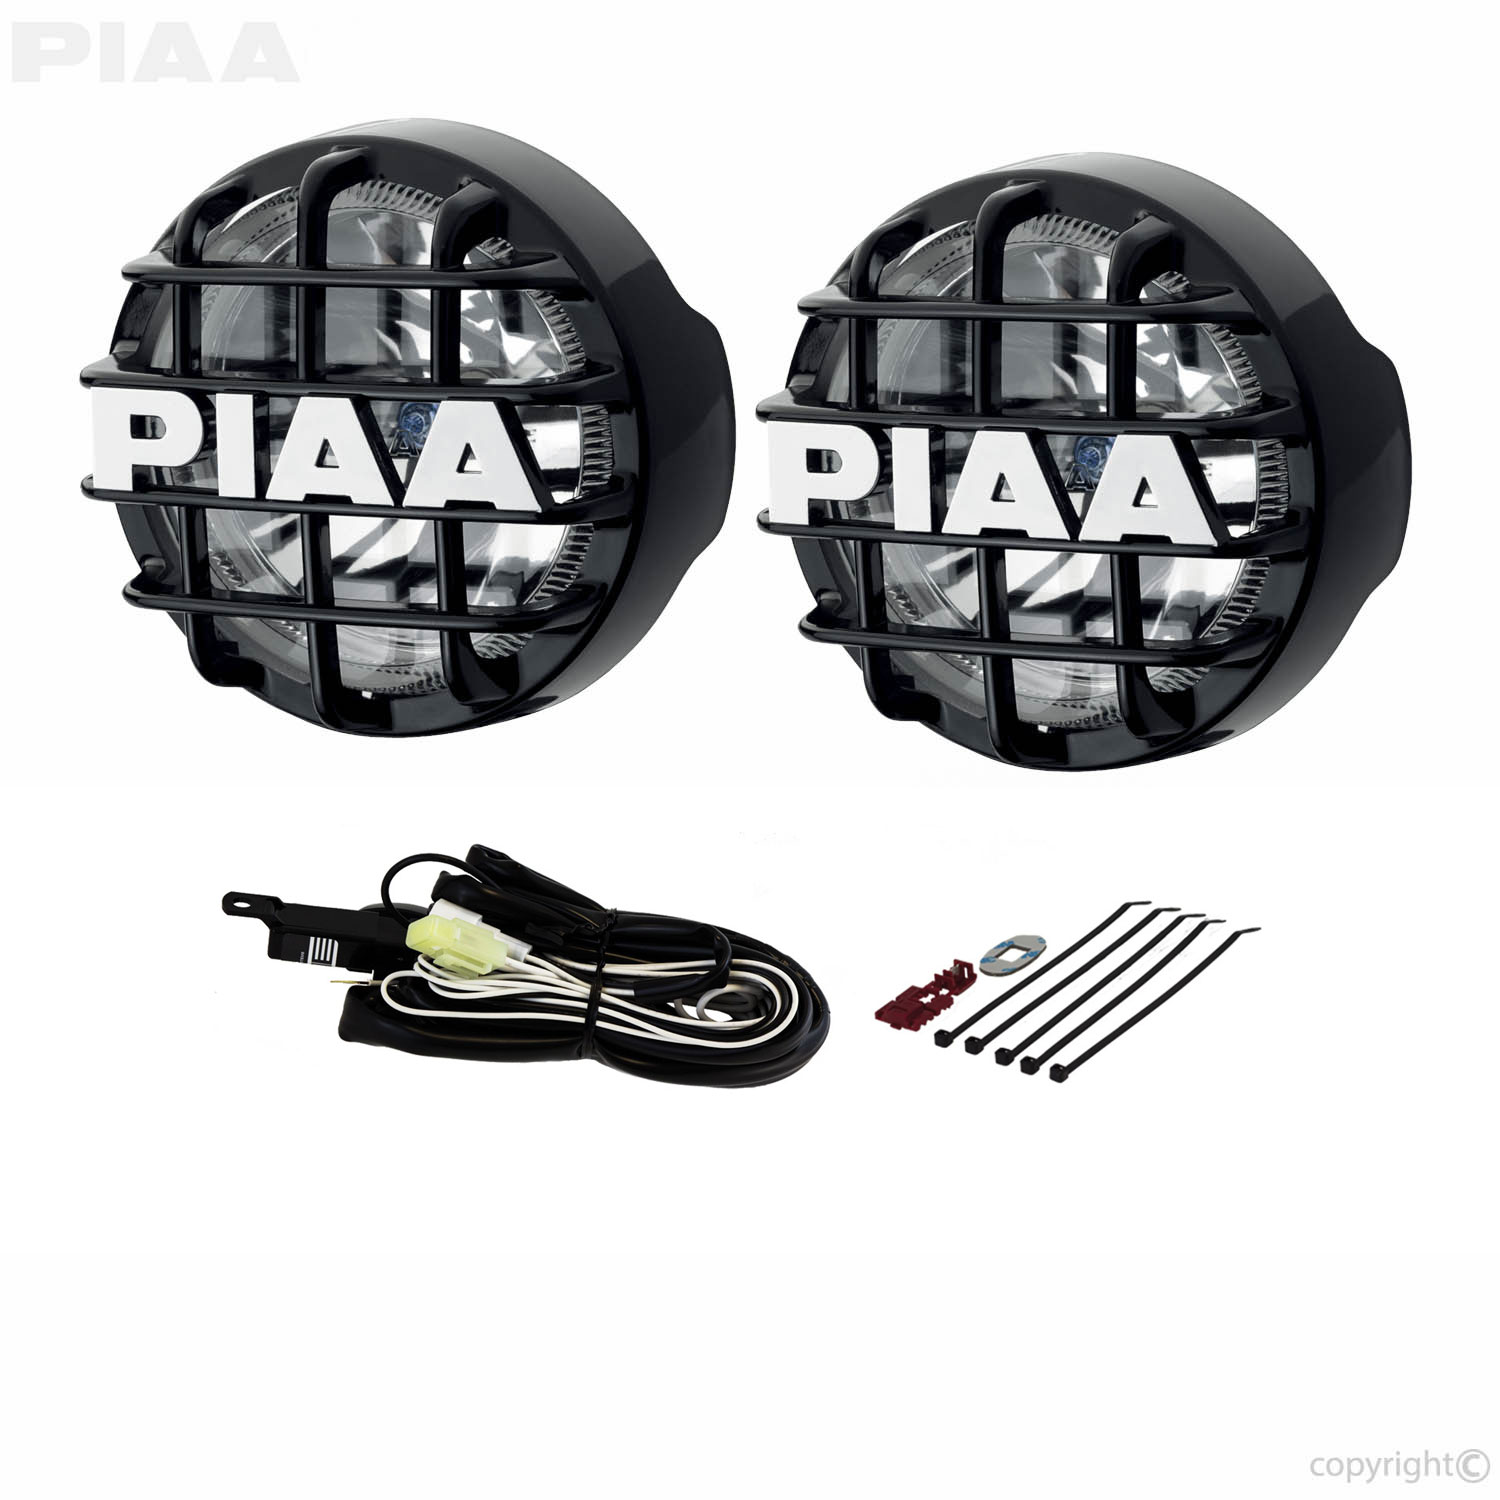 piaa wiring diagram free picture schematic wiring free printable wiring diagrams